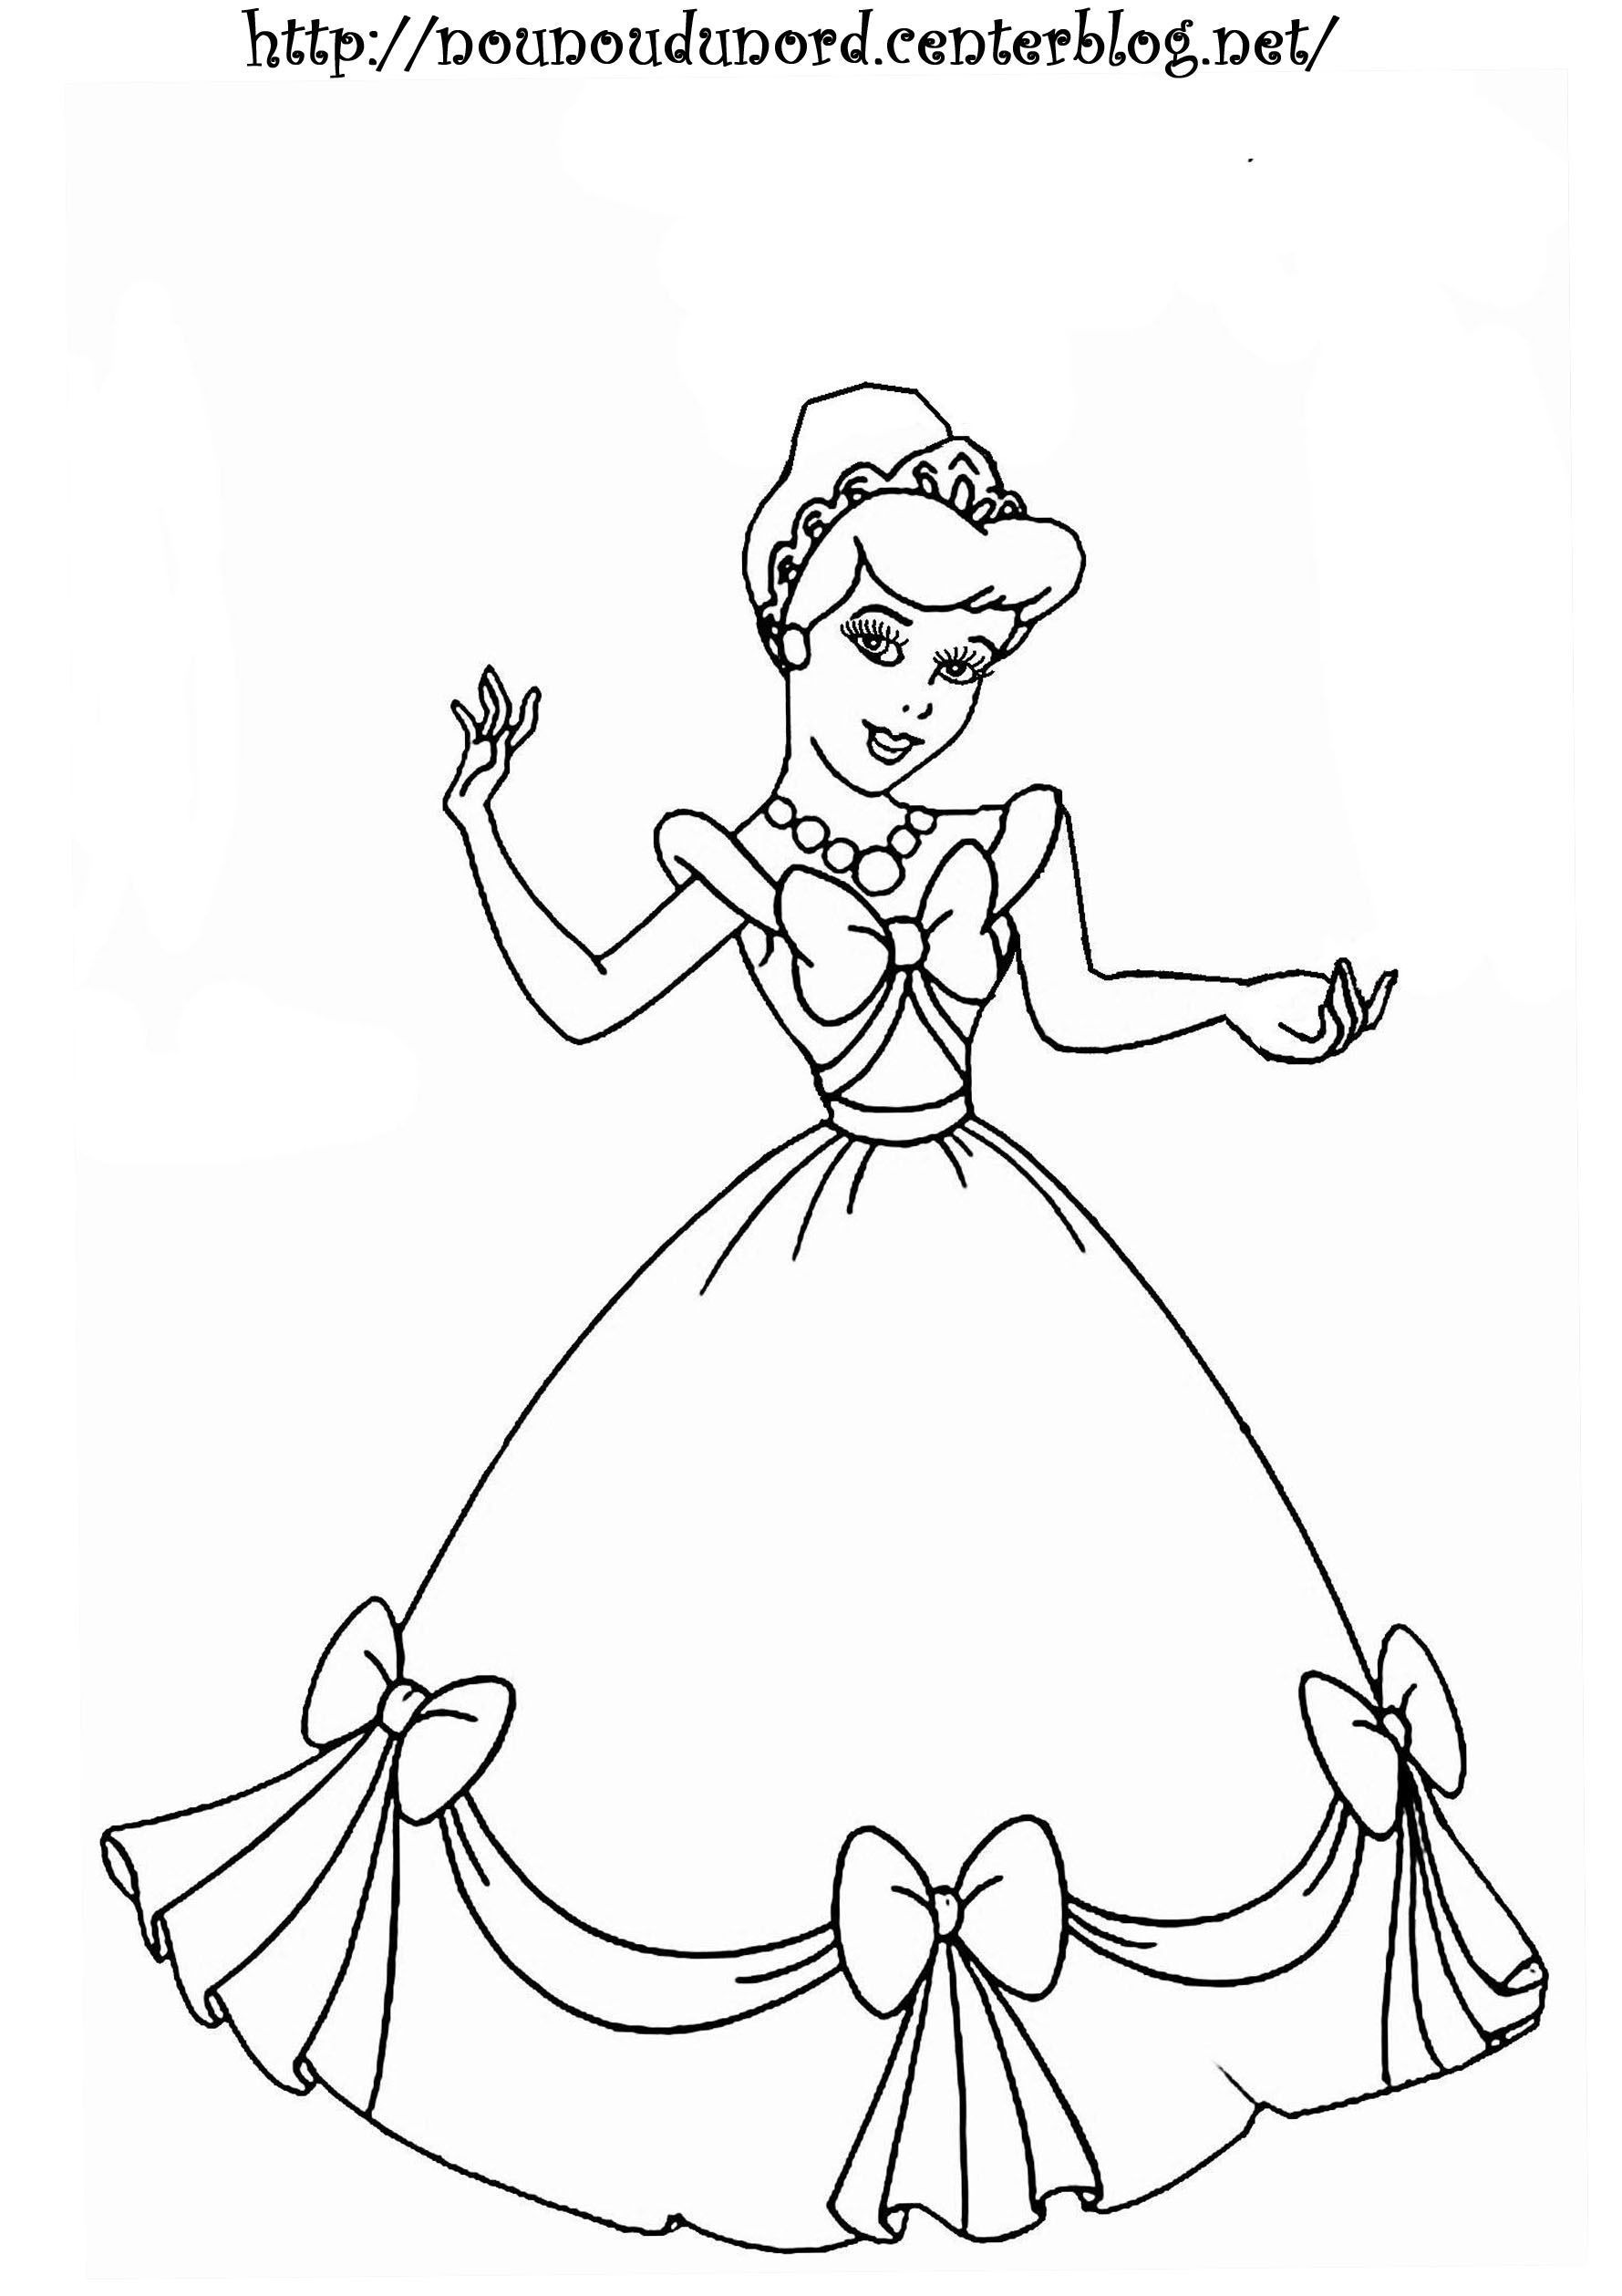 Coloriage princesse a imprimer - Coloriages princesse ...